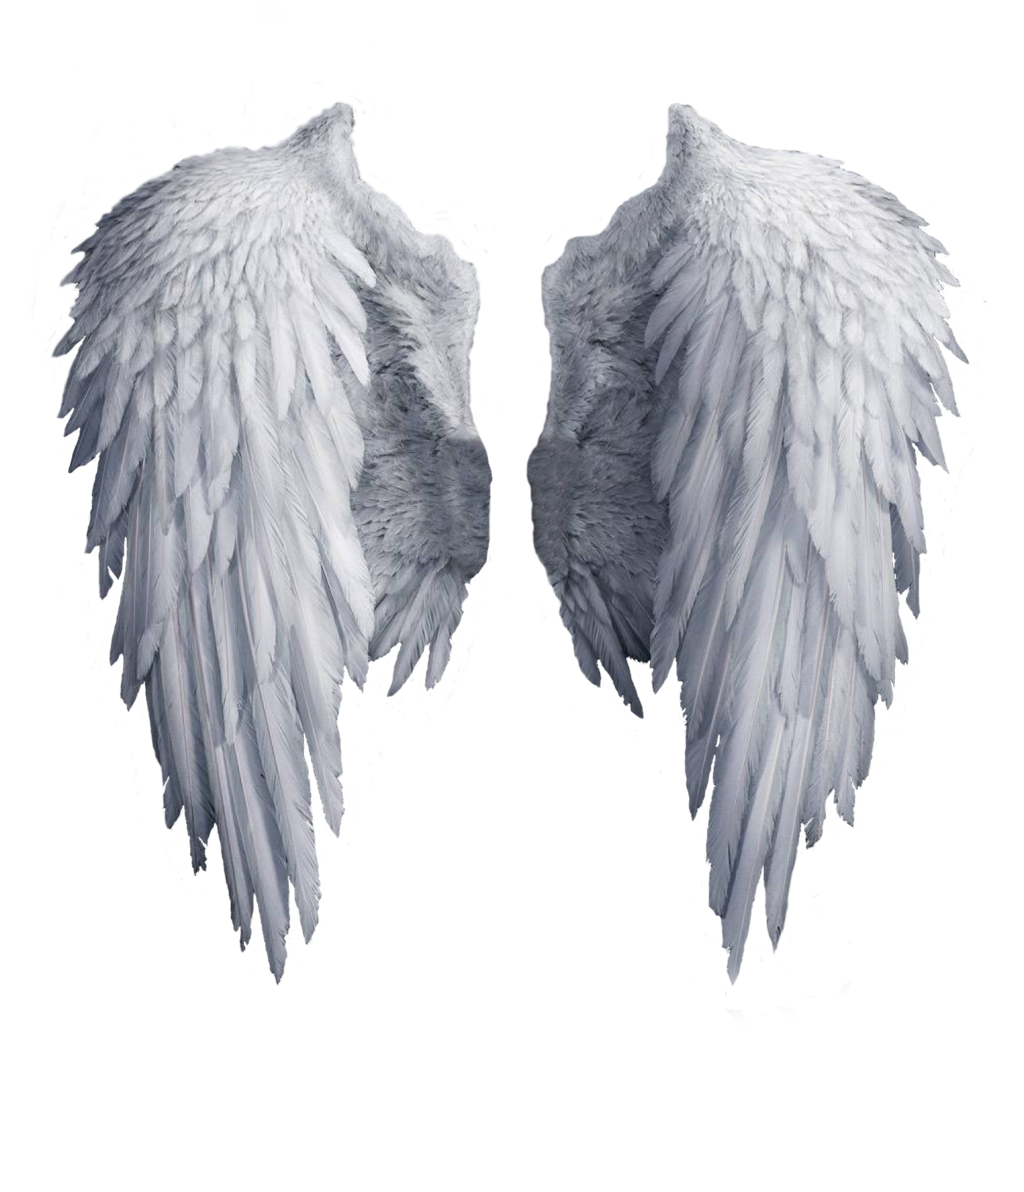 Wings Image PNG Image